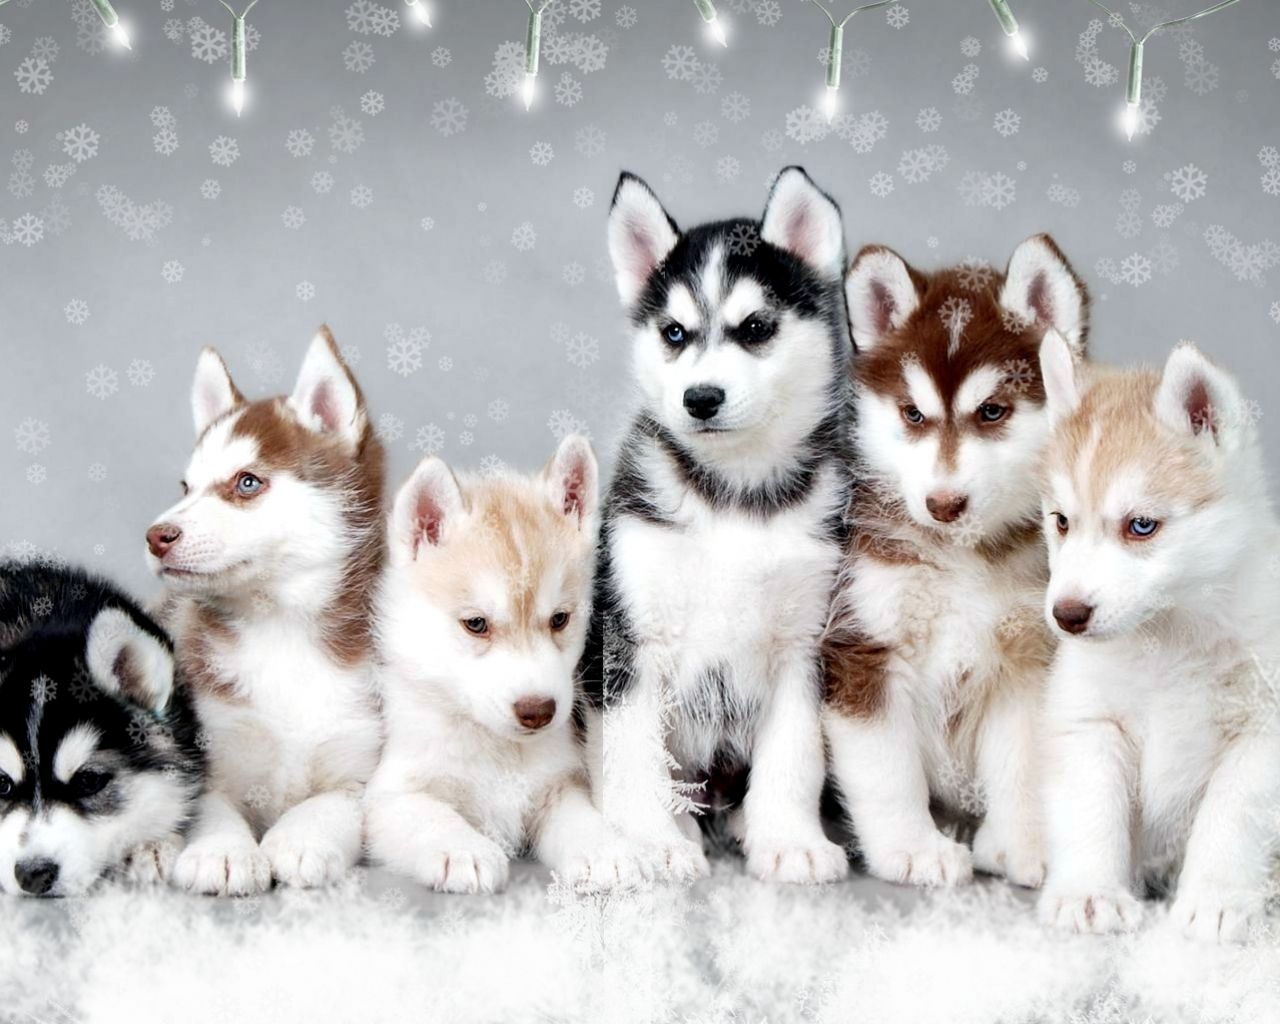 Baby Husky Dog Wallpaper For Android Cute Husky Puppy Dogs